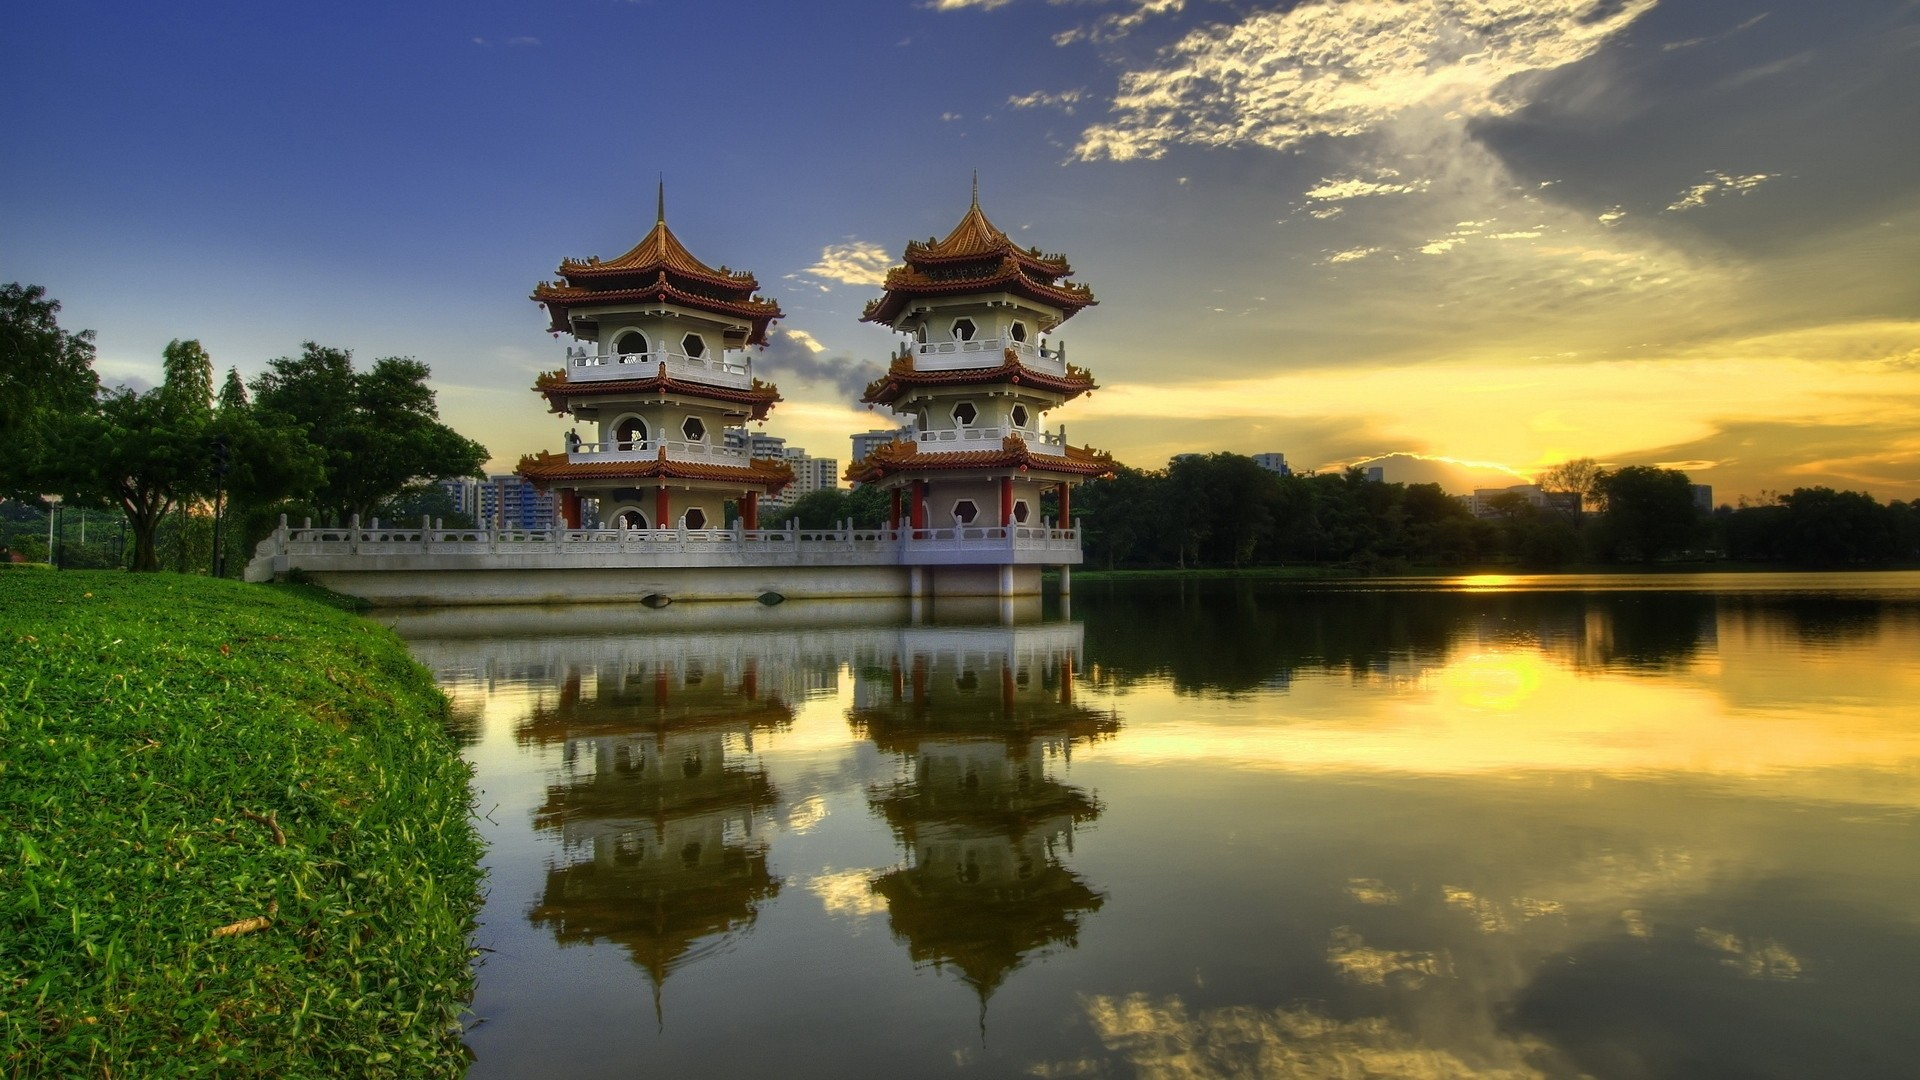 Chinese-Pagoda-Lake-Building-nice-view-1920-1080-wallpaper-wp3803764